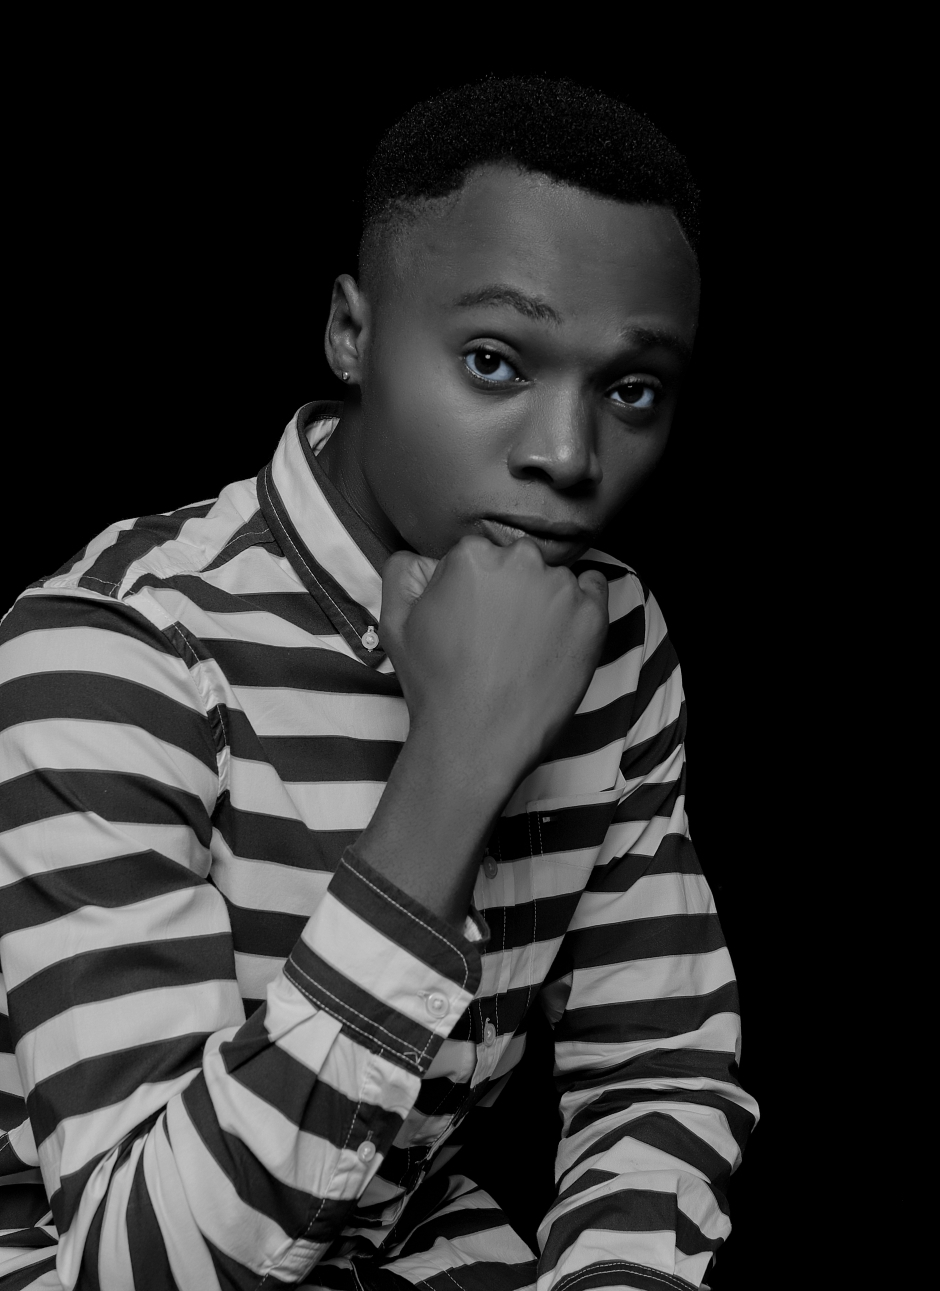 Solomon Uhiara, a young Nigeria-based writer, has his short story performed by Ato Essandoh.